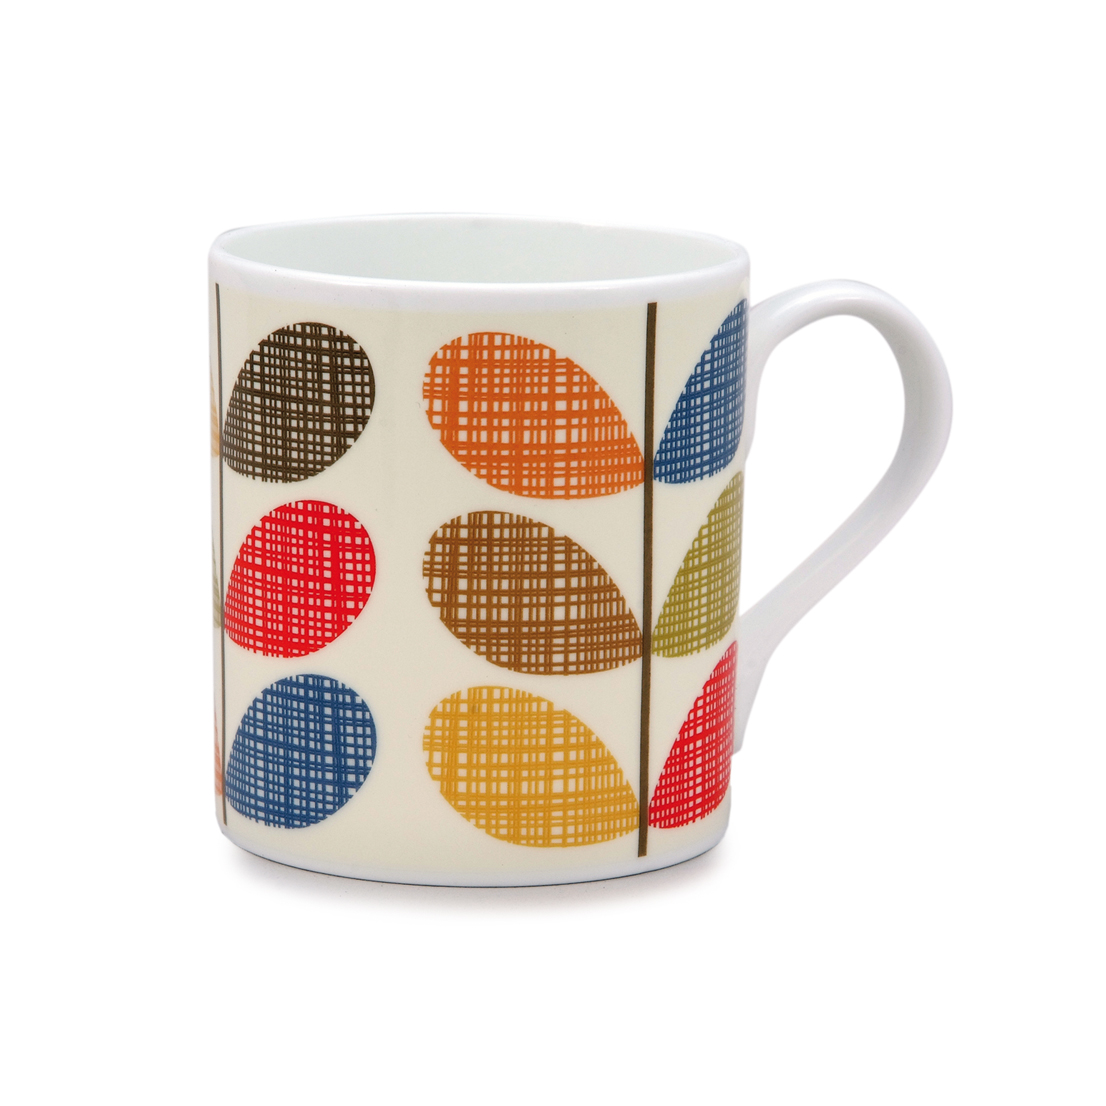 Orla Kiely Mug - Scribble Multi-stem